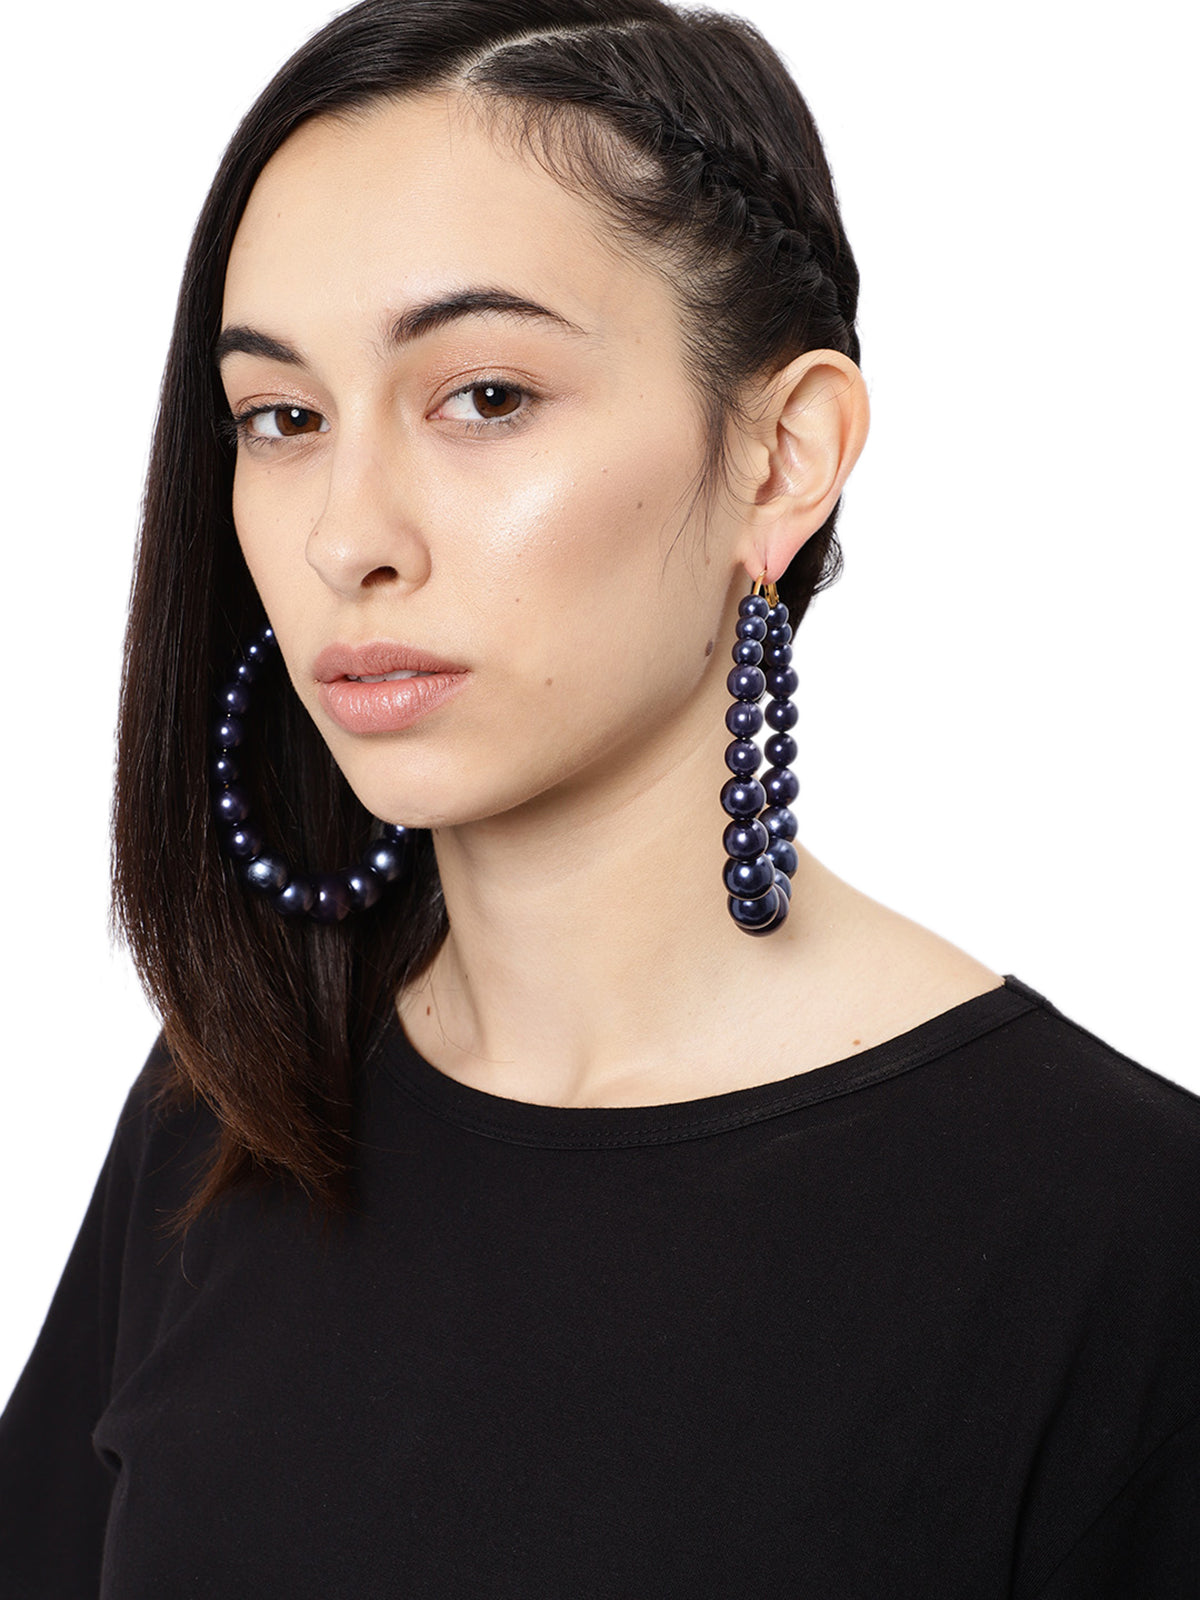 Zaveri Pearls Contemporary Style Beaded Hoop Earring-ZAVERI PEARLS1-Earring